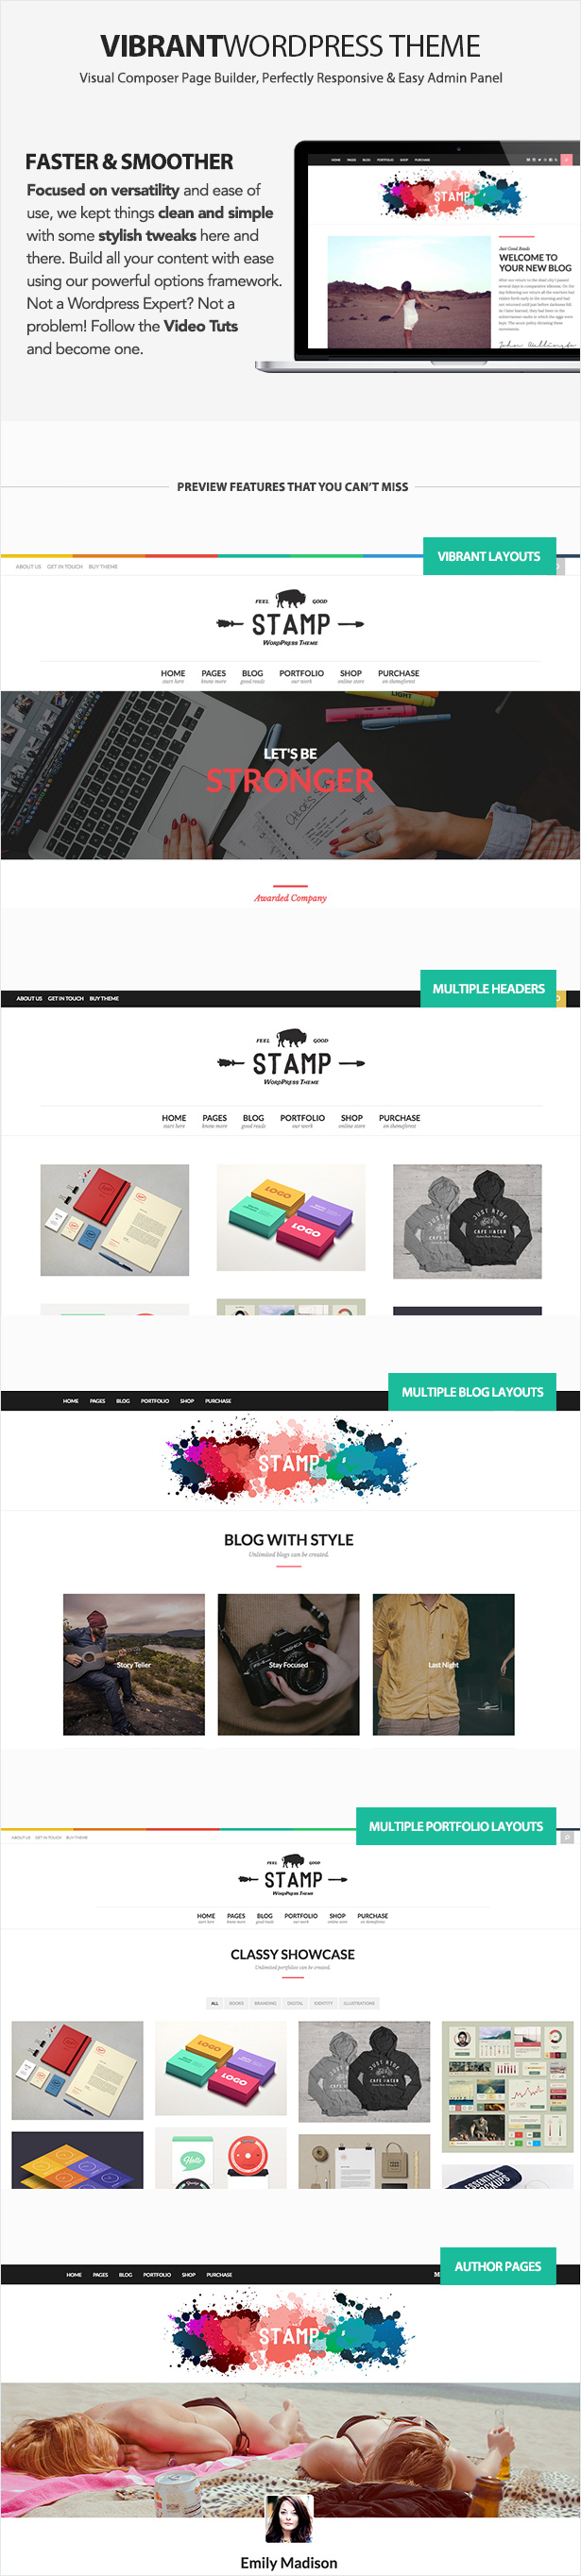 Stamp - Vibrant WordPress Theme - 2